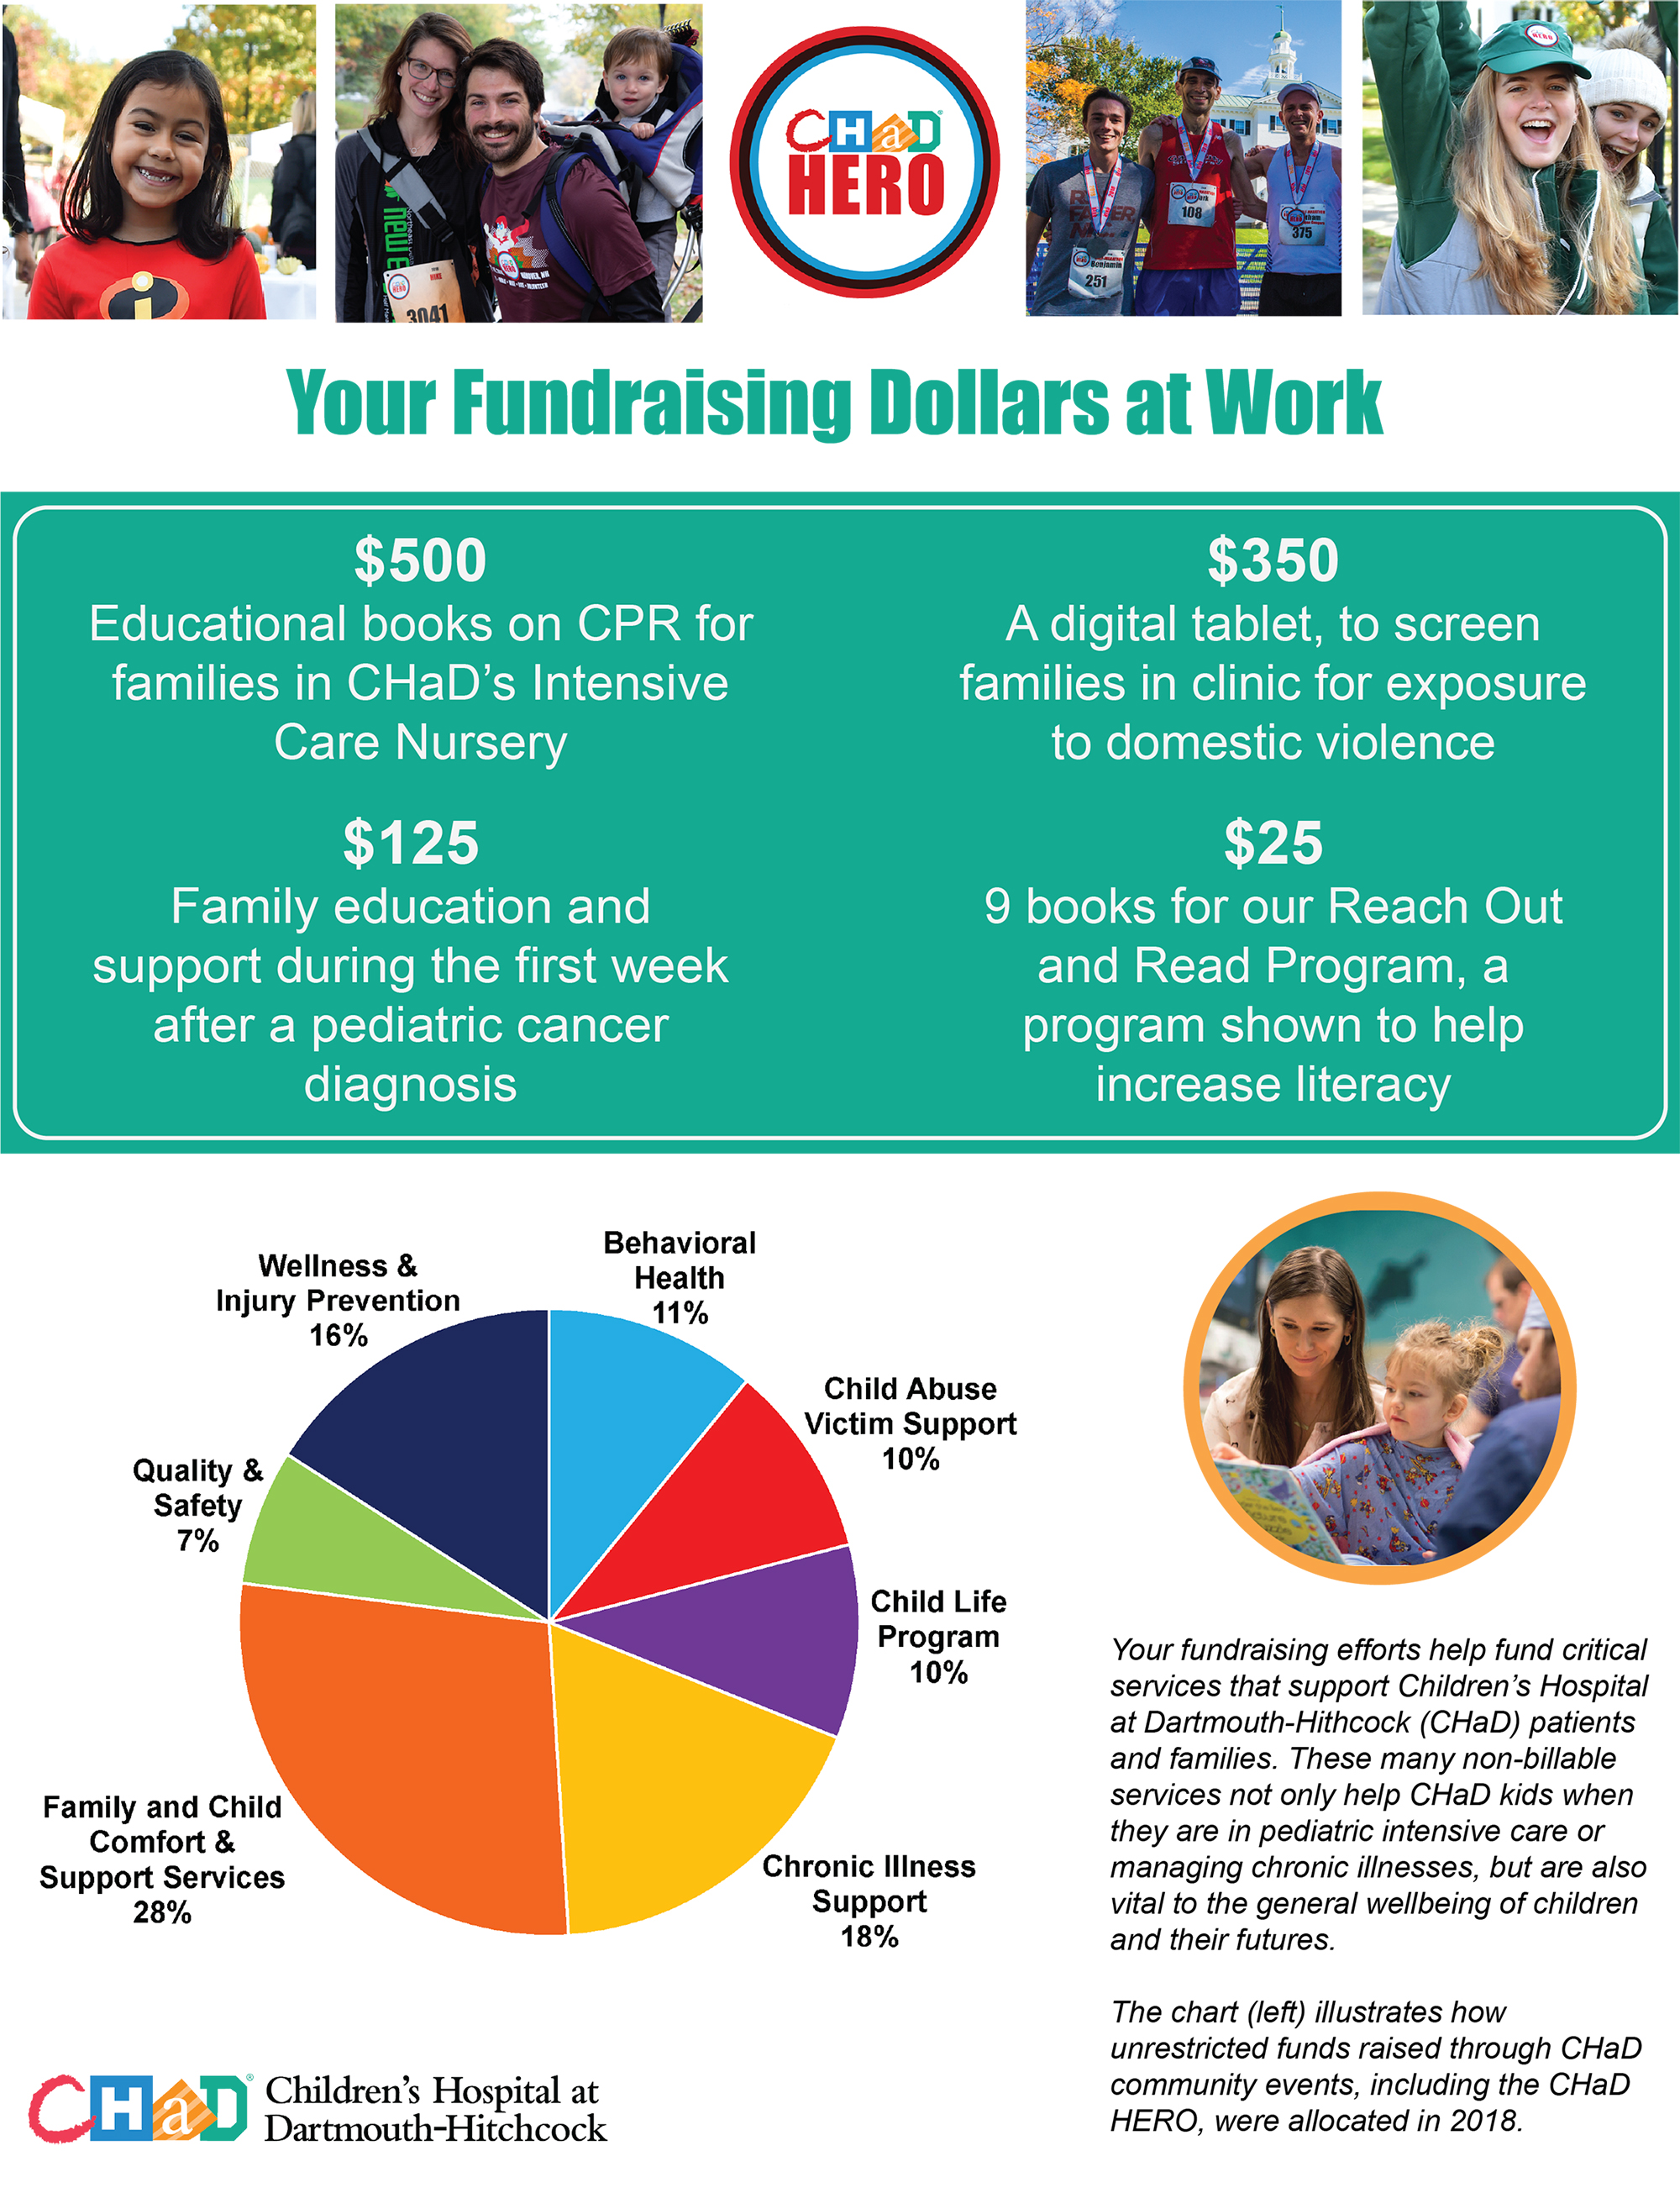 Your Fundraising Dollars at Work